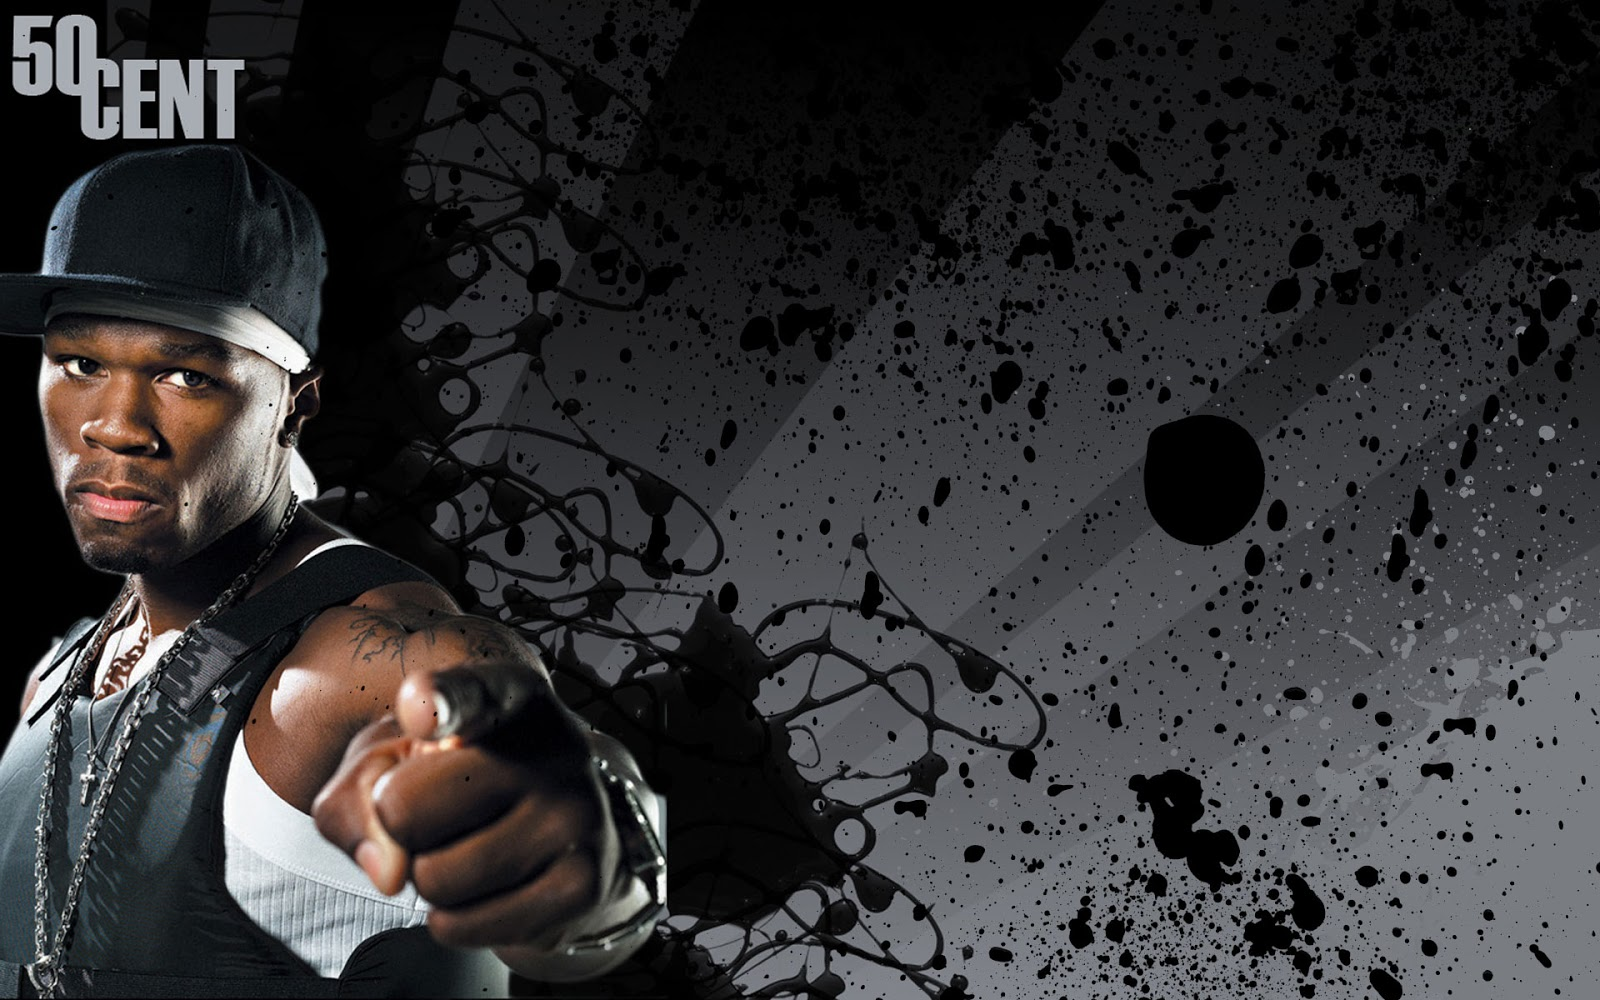 50 cent wallpapers hd wallpapers